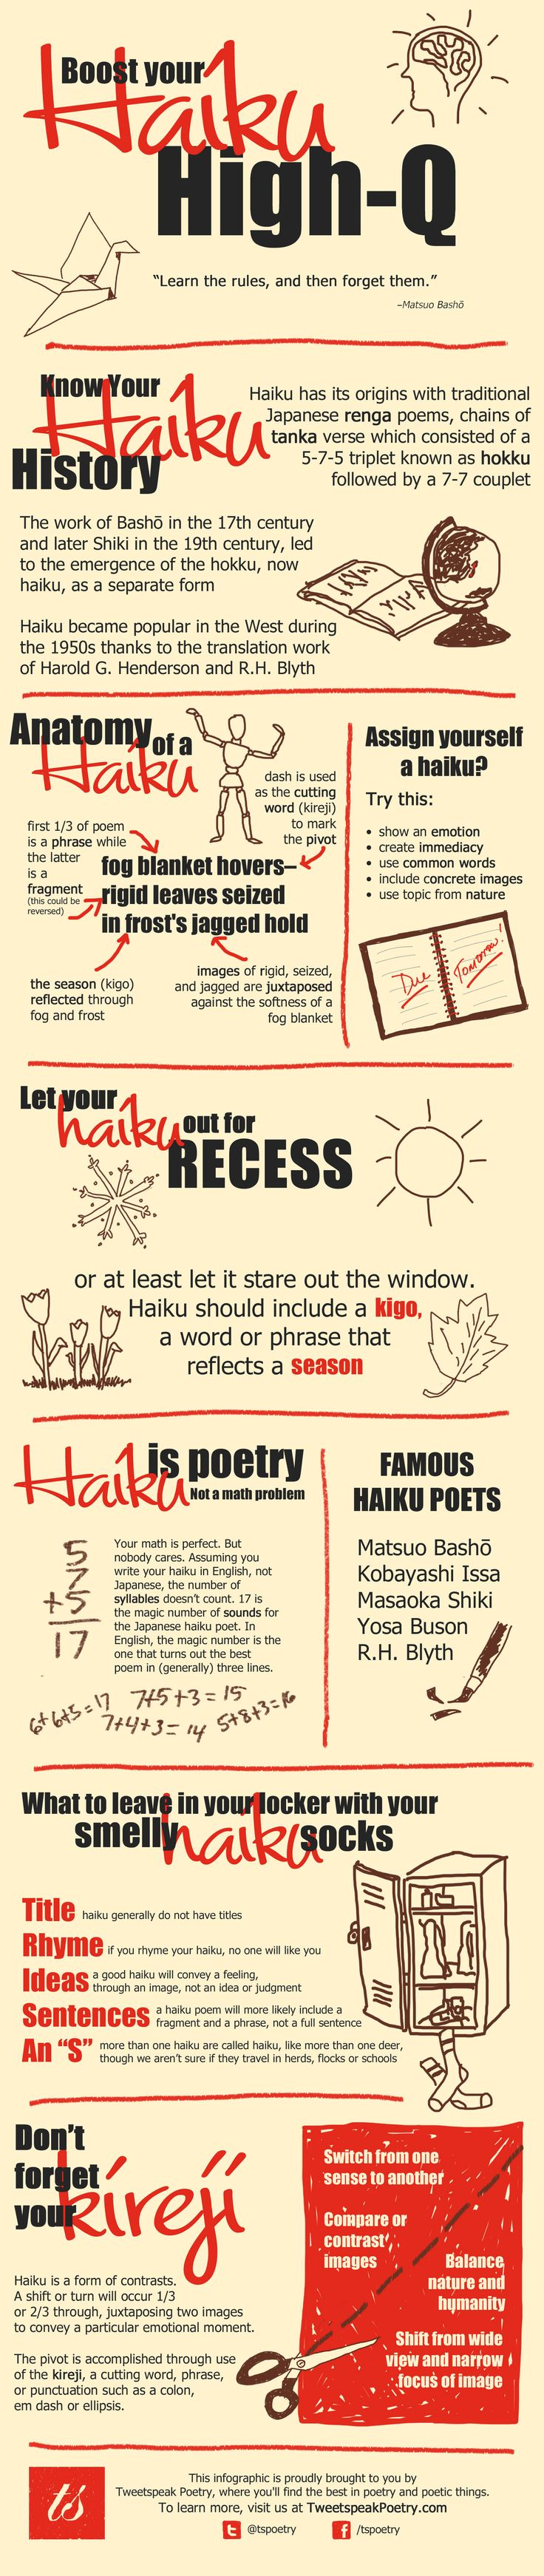 A fun infographic to teach the basics of haiku poetry including the history, structure, and content of the popular and compact poetic form.